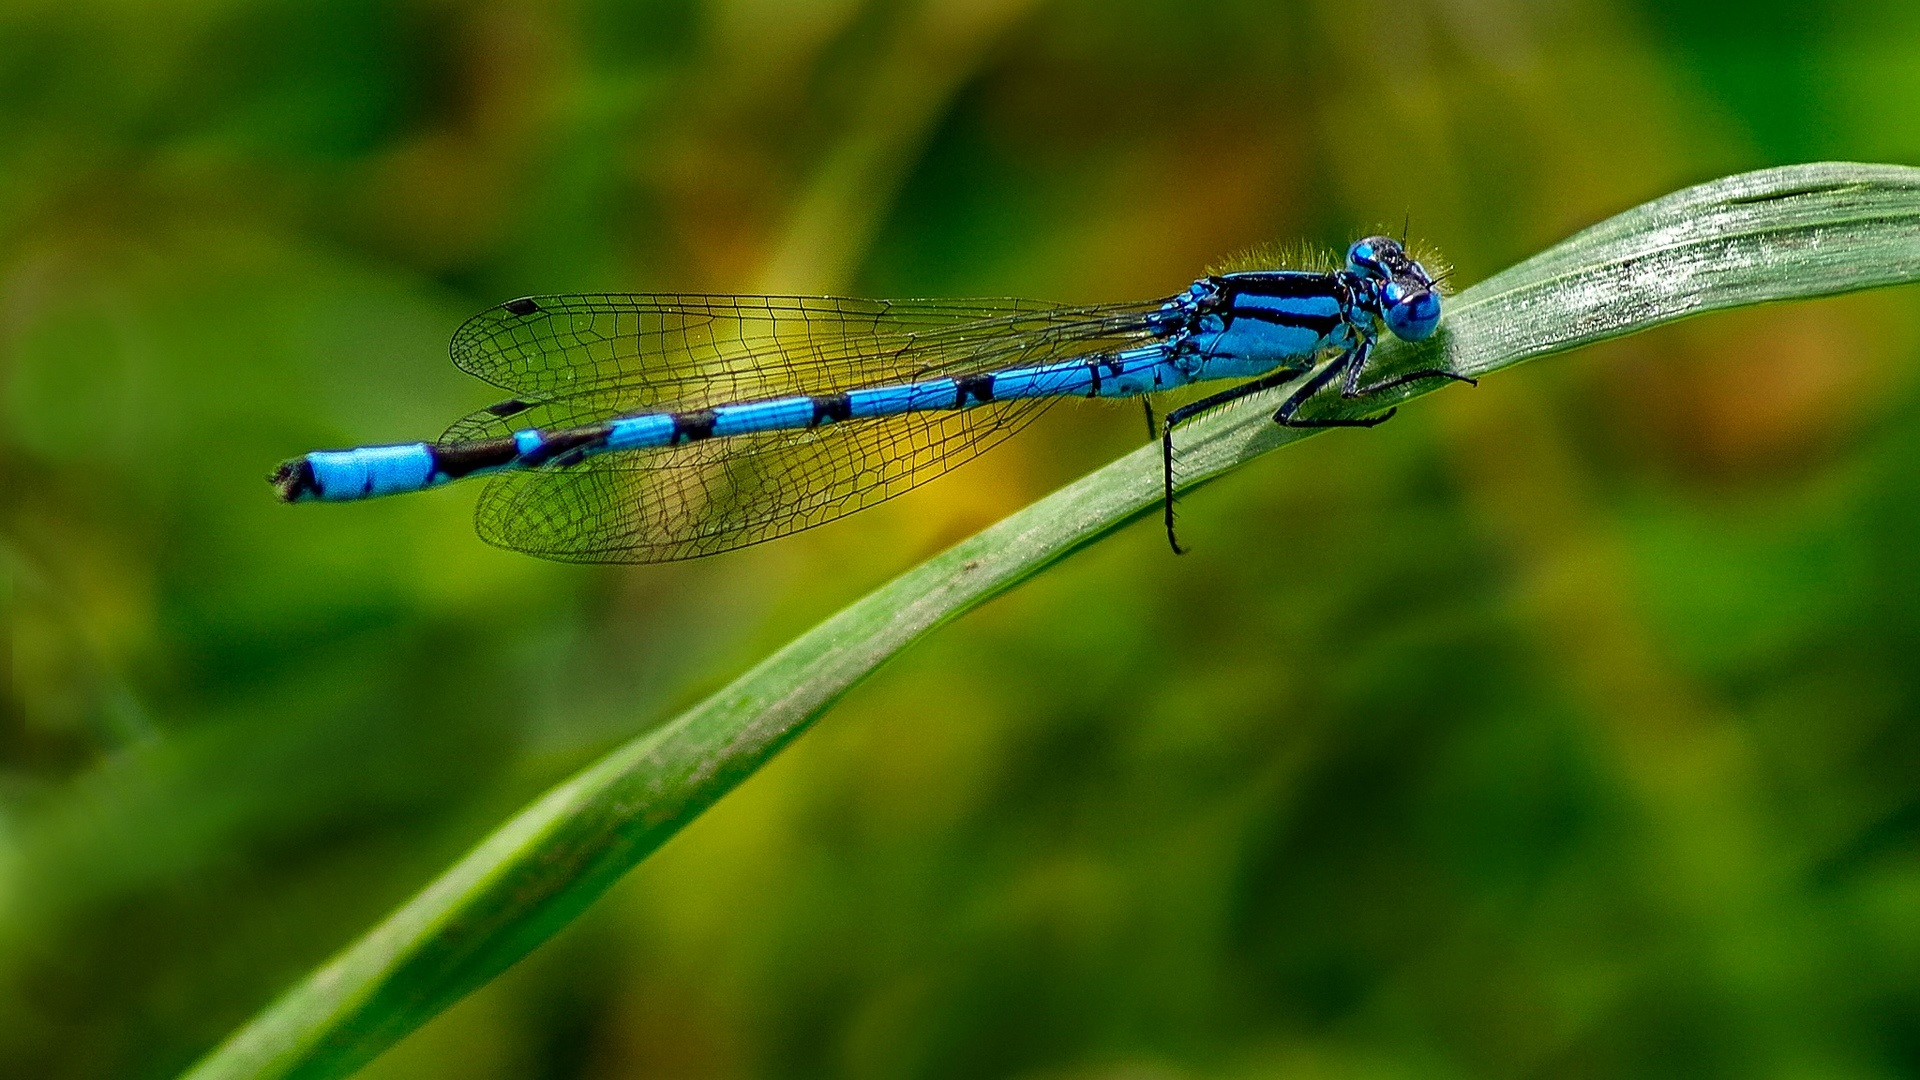 Eyes Of A Dragonfly Nature Dew Cute Macro Hd Wallpaper: Wallpaper Blue Dragonfly, Insect, Leaf 1920x1080 Full HD